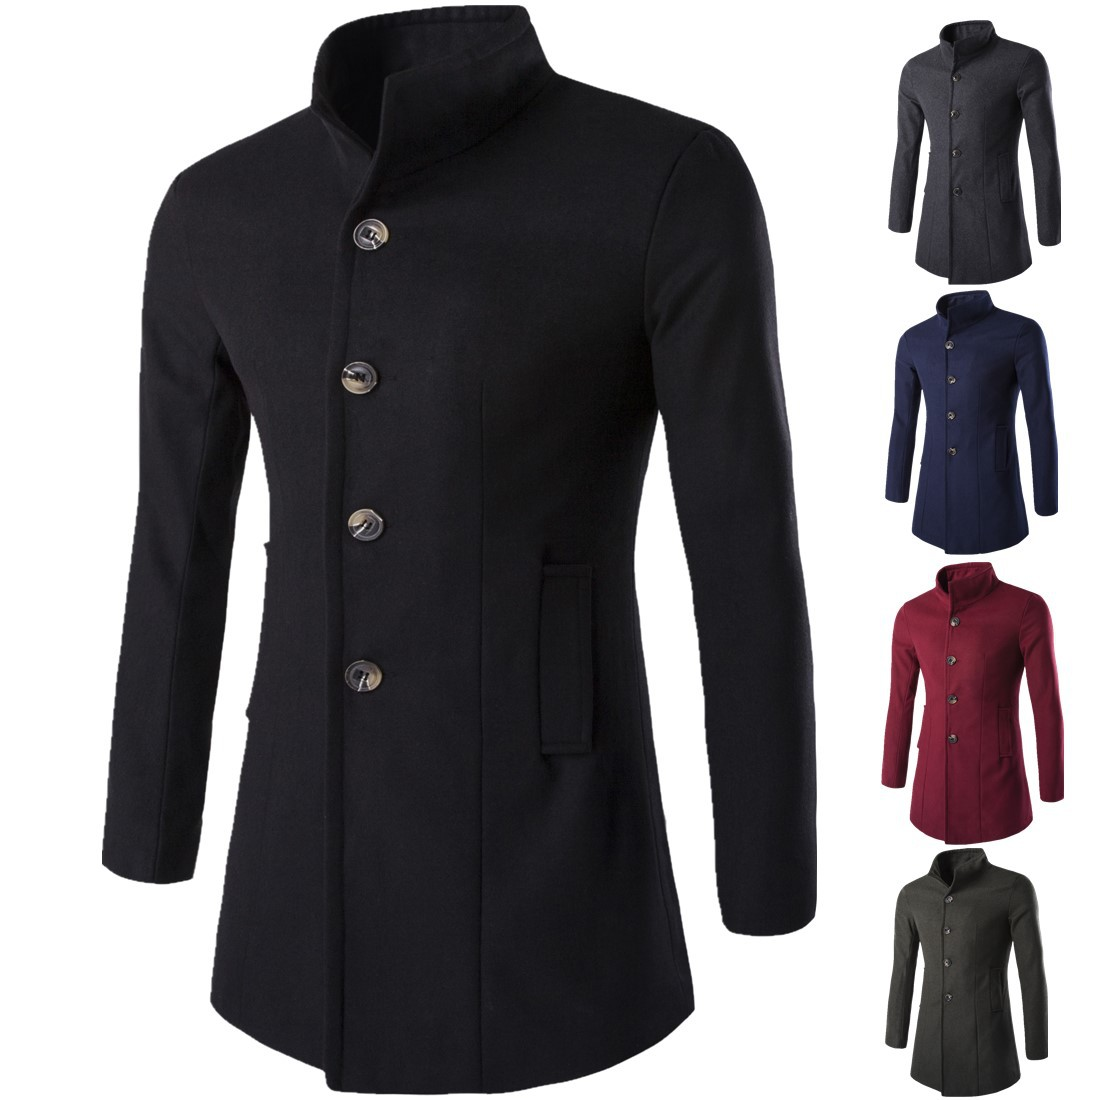 S/&S Mens Autumn Winter Casual Stand Collar Button Front Business Wool Blend Pea Coat